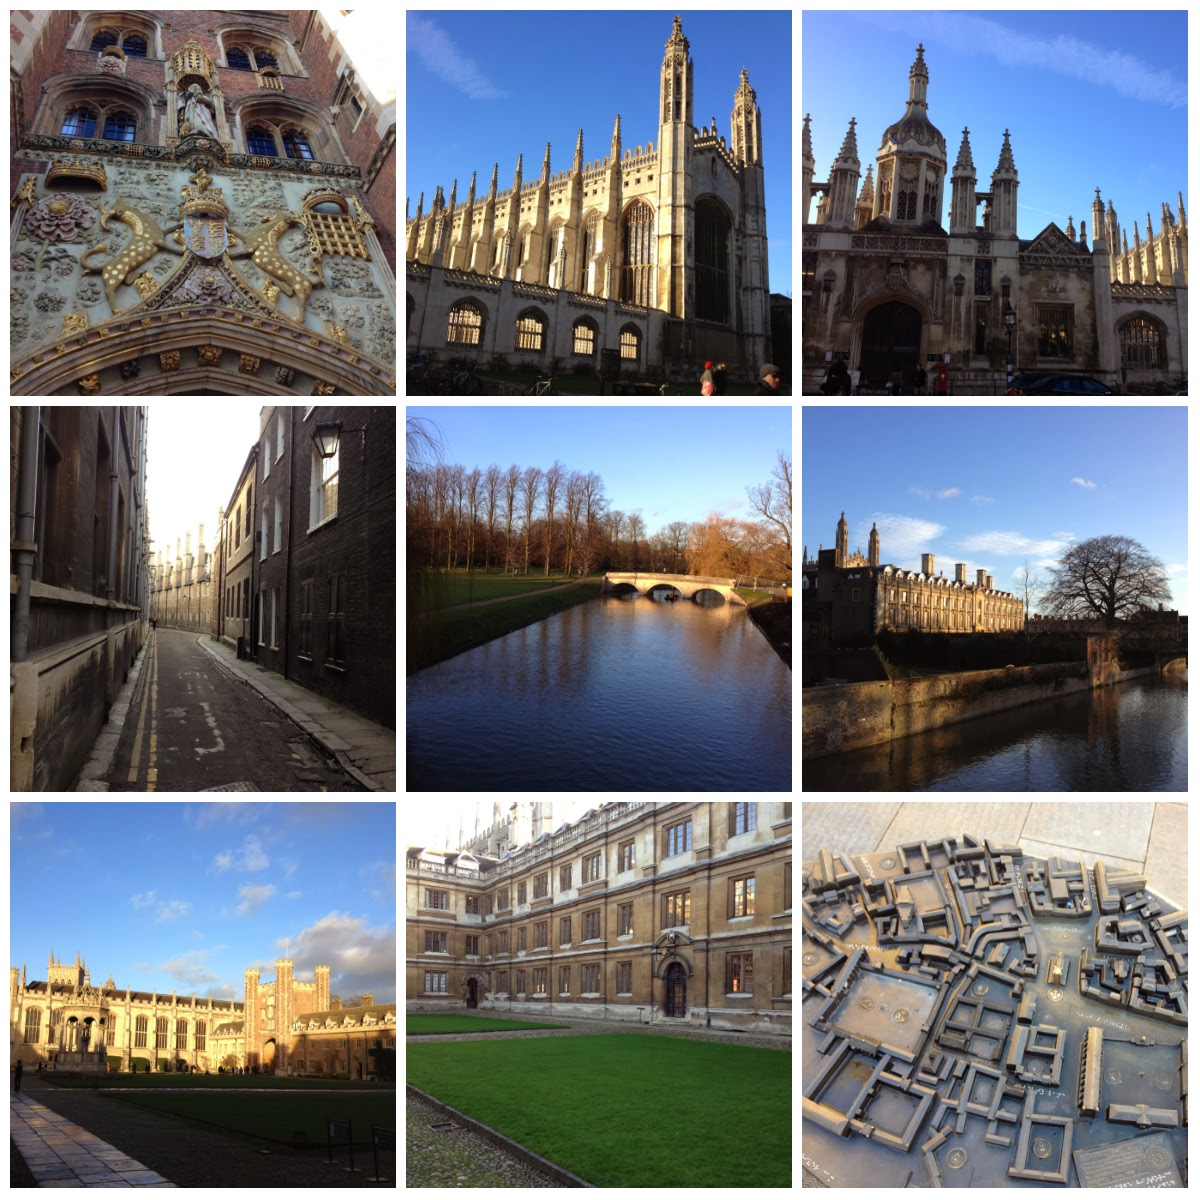 One my day around cambridge